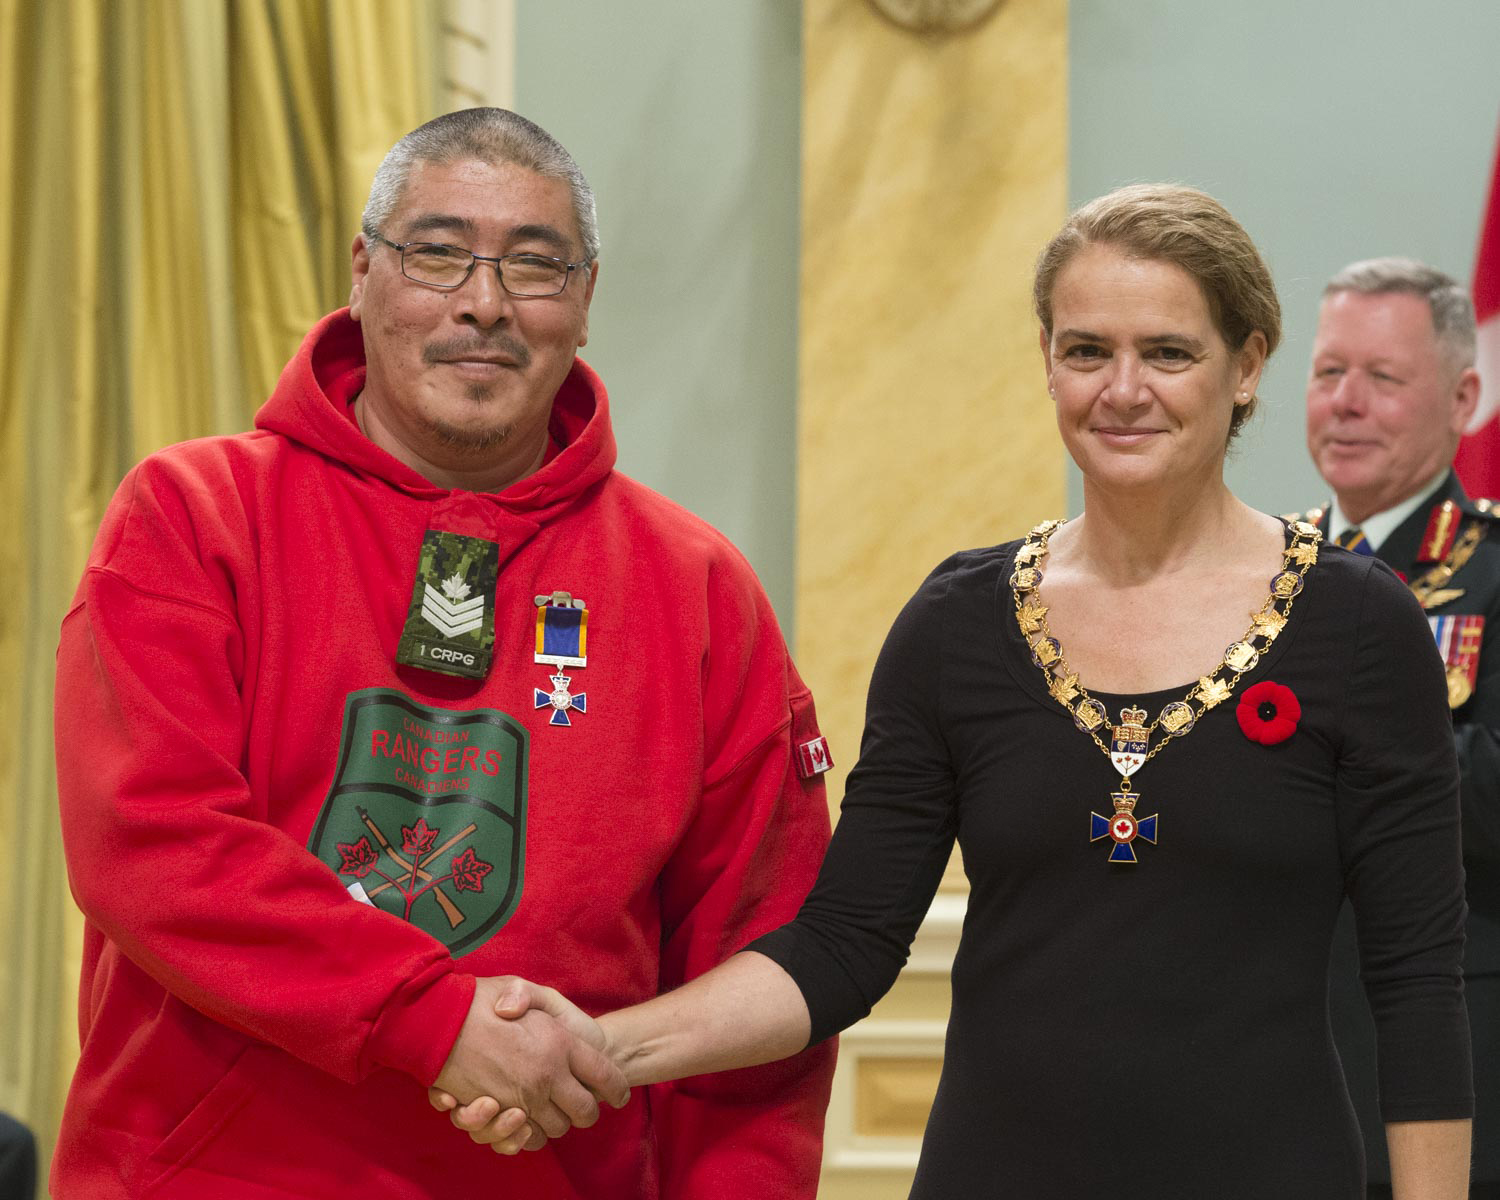 Her Excellency presented the Order of Military Merit at the Member level (M.M.M.) to Ranger Levi Palituq, M.M.M., M.B., C.D., from 1 Canadian Ranger Patrol Group, in Yellowknife, Northwest Territories.